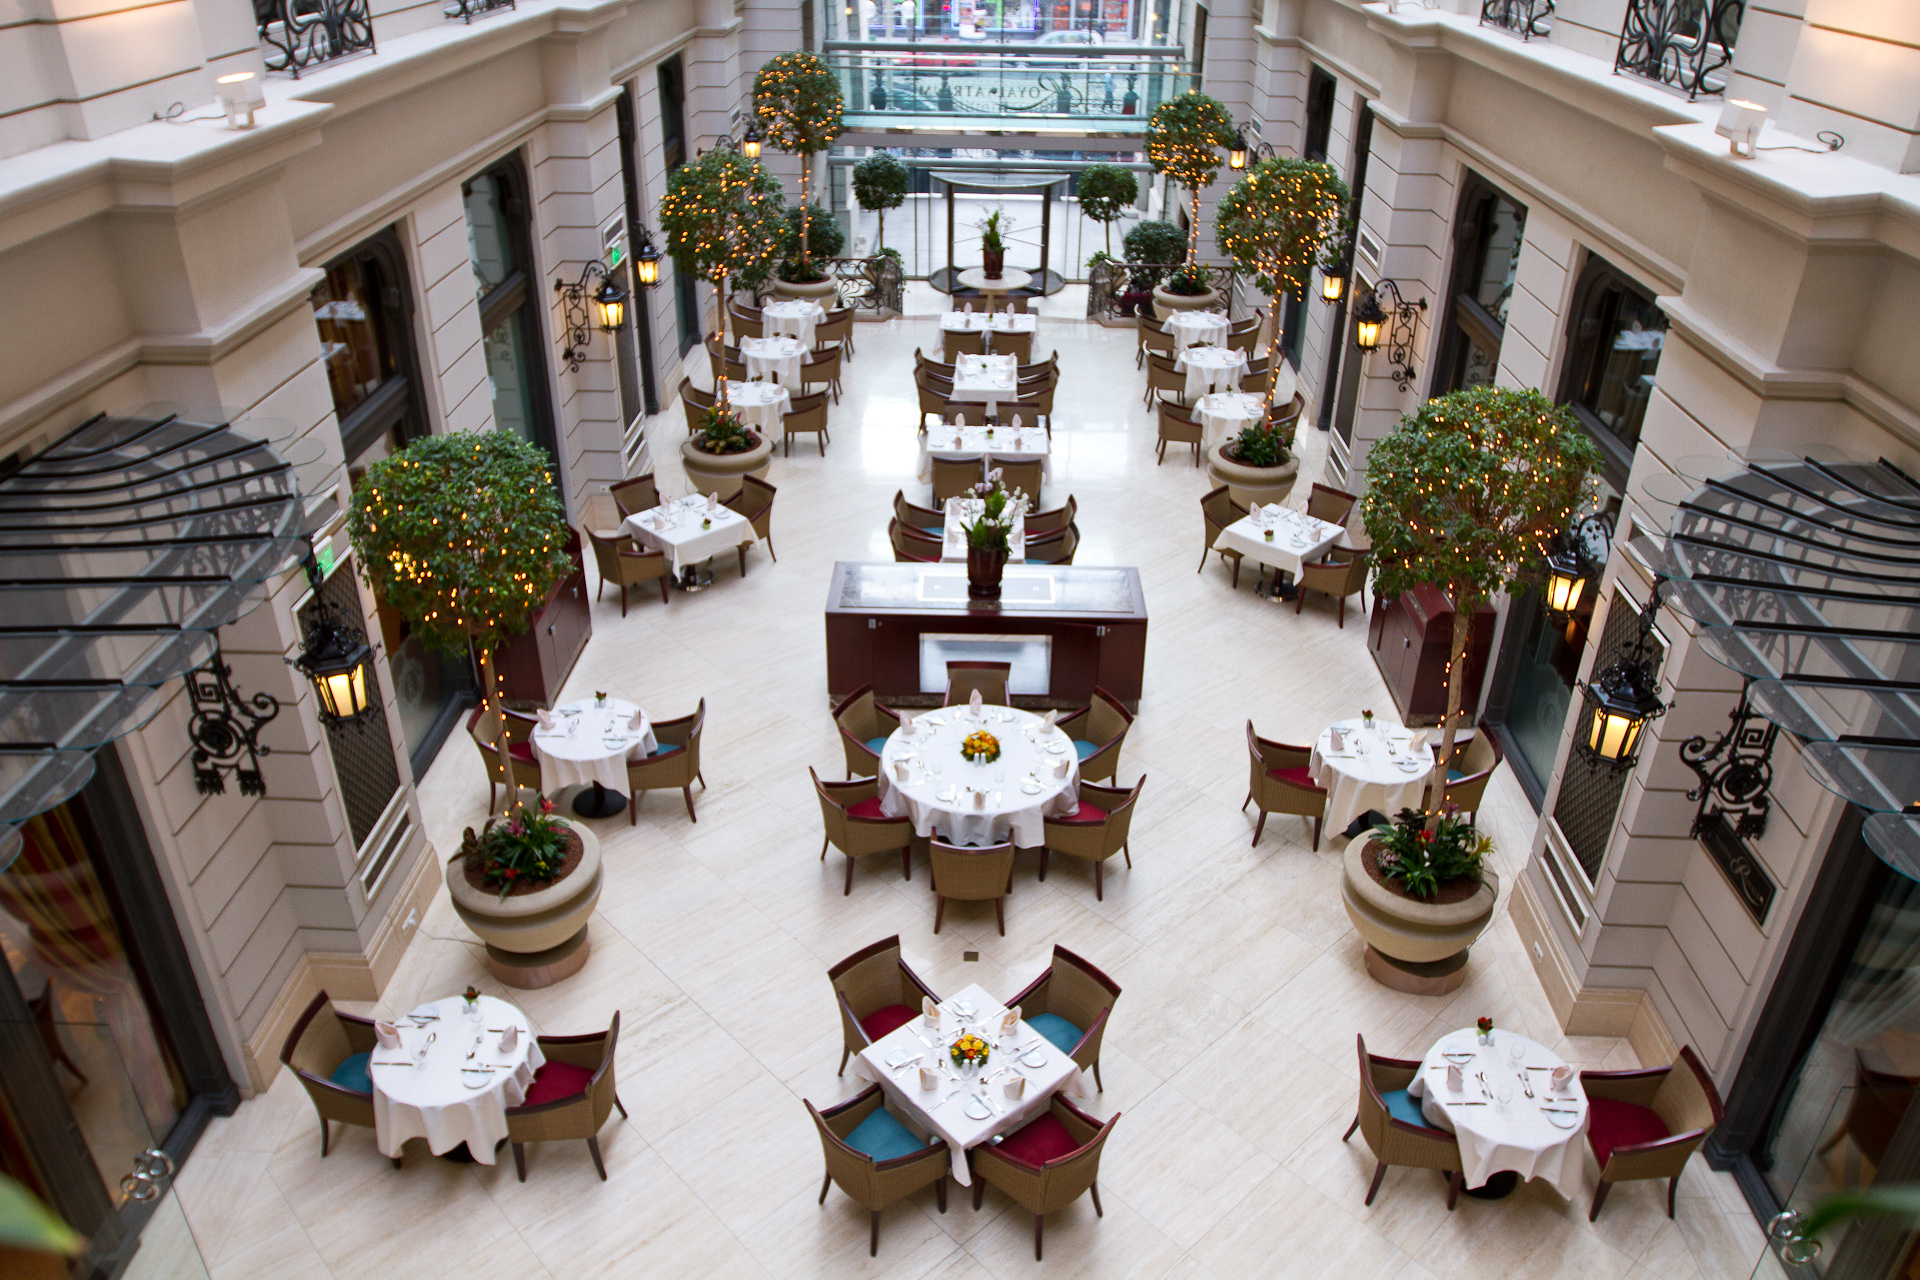 Weekend Dining at the Brasserie & Atrium in Budapest